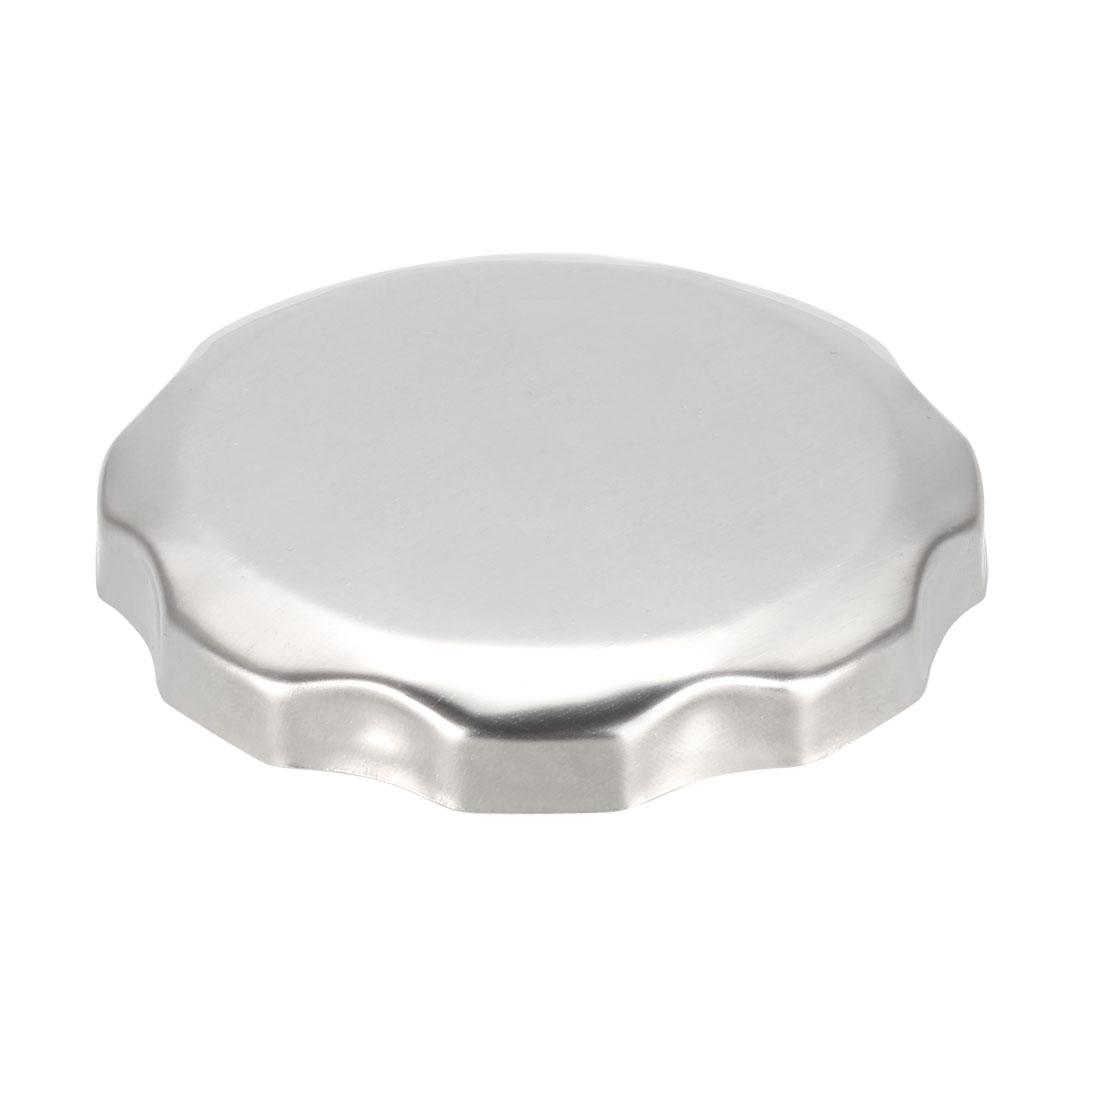 Fuel Tank Gas Cap for GX270 for GX340 for GX390 for 168F for 188F for 190F